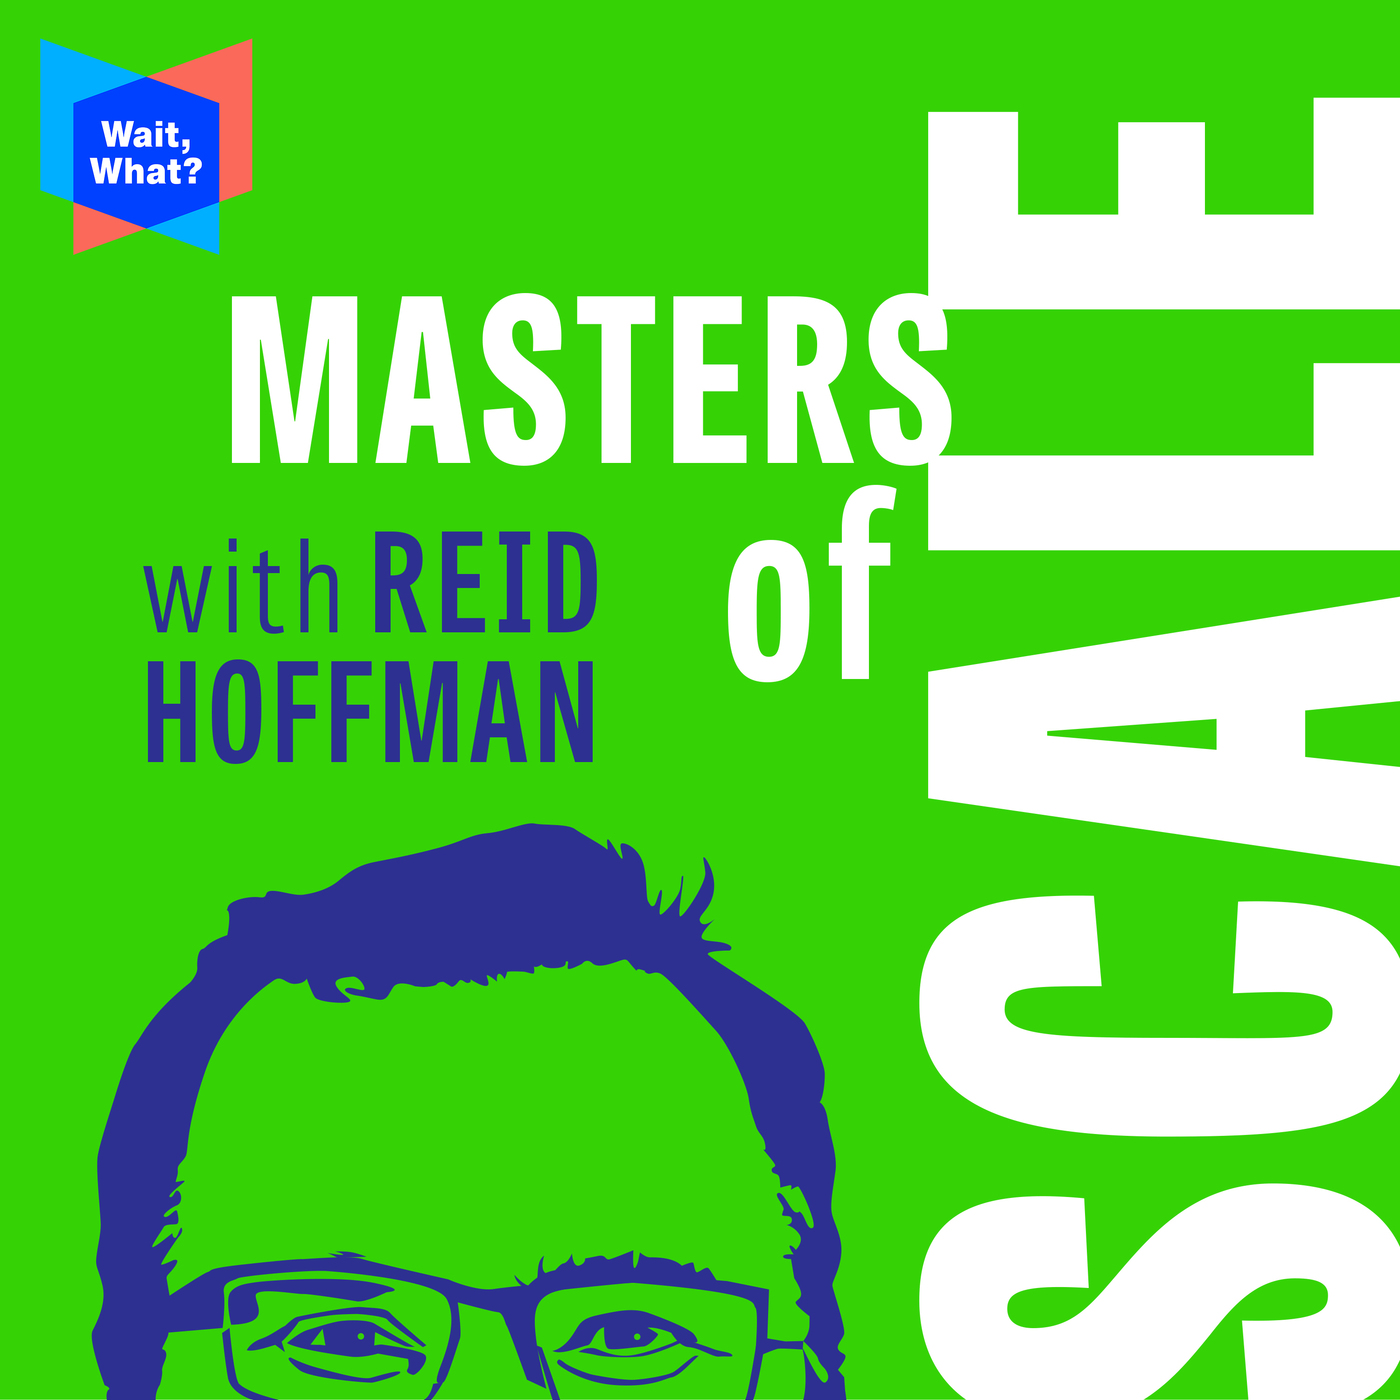 Masters of Scale  podcasts for entrepreneurs